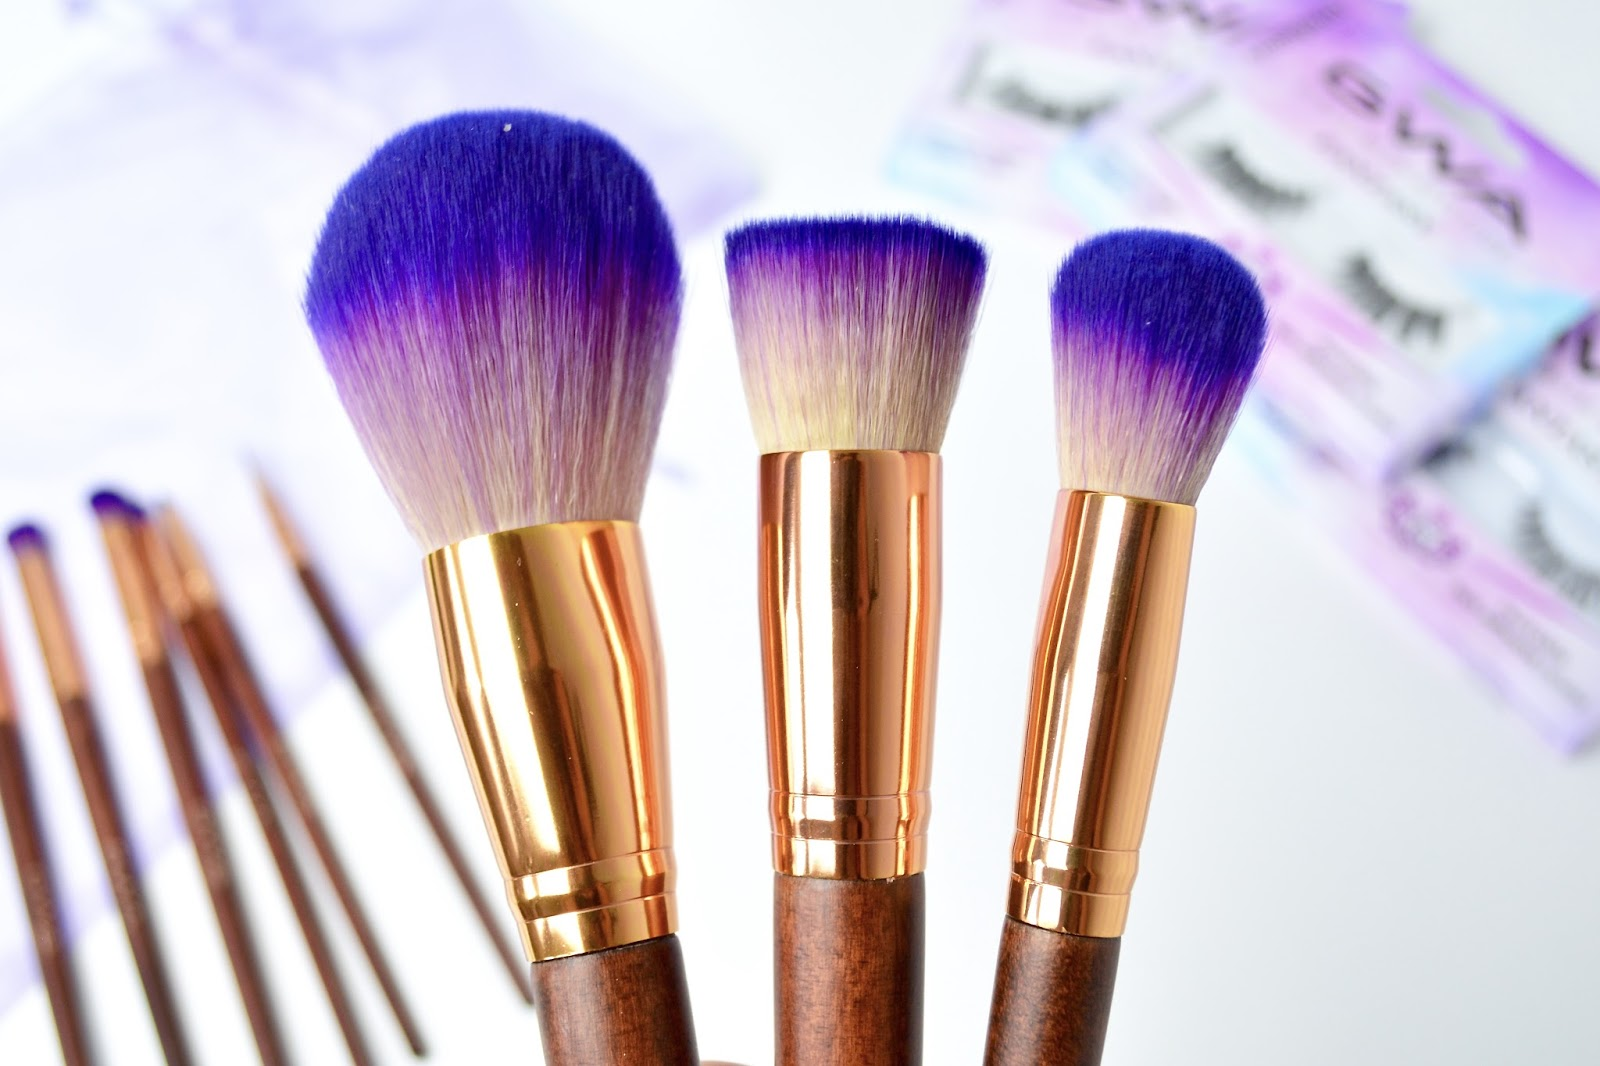 Girls With Attitude, Girls With Attitude Fantasy Brushes, Makeup, Makeup Brushes, Ombre Makeup Brushes, Brushes, Fairytale Brushes